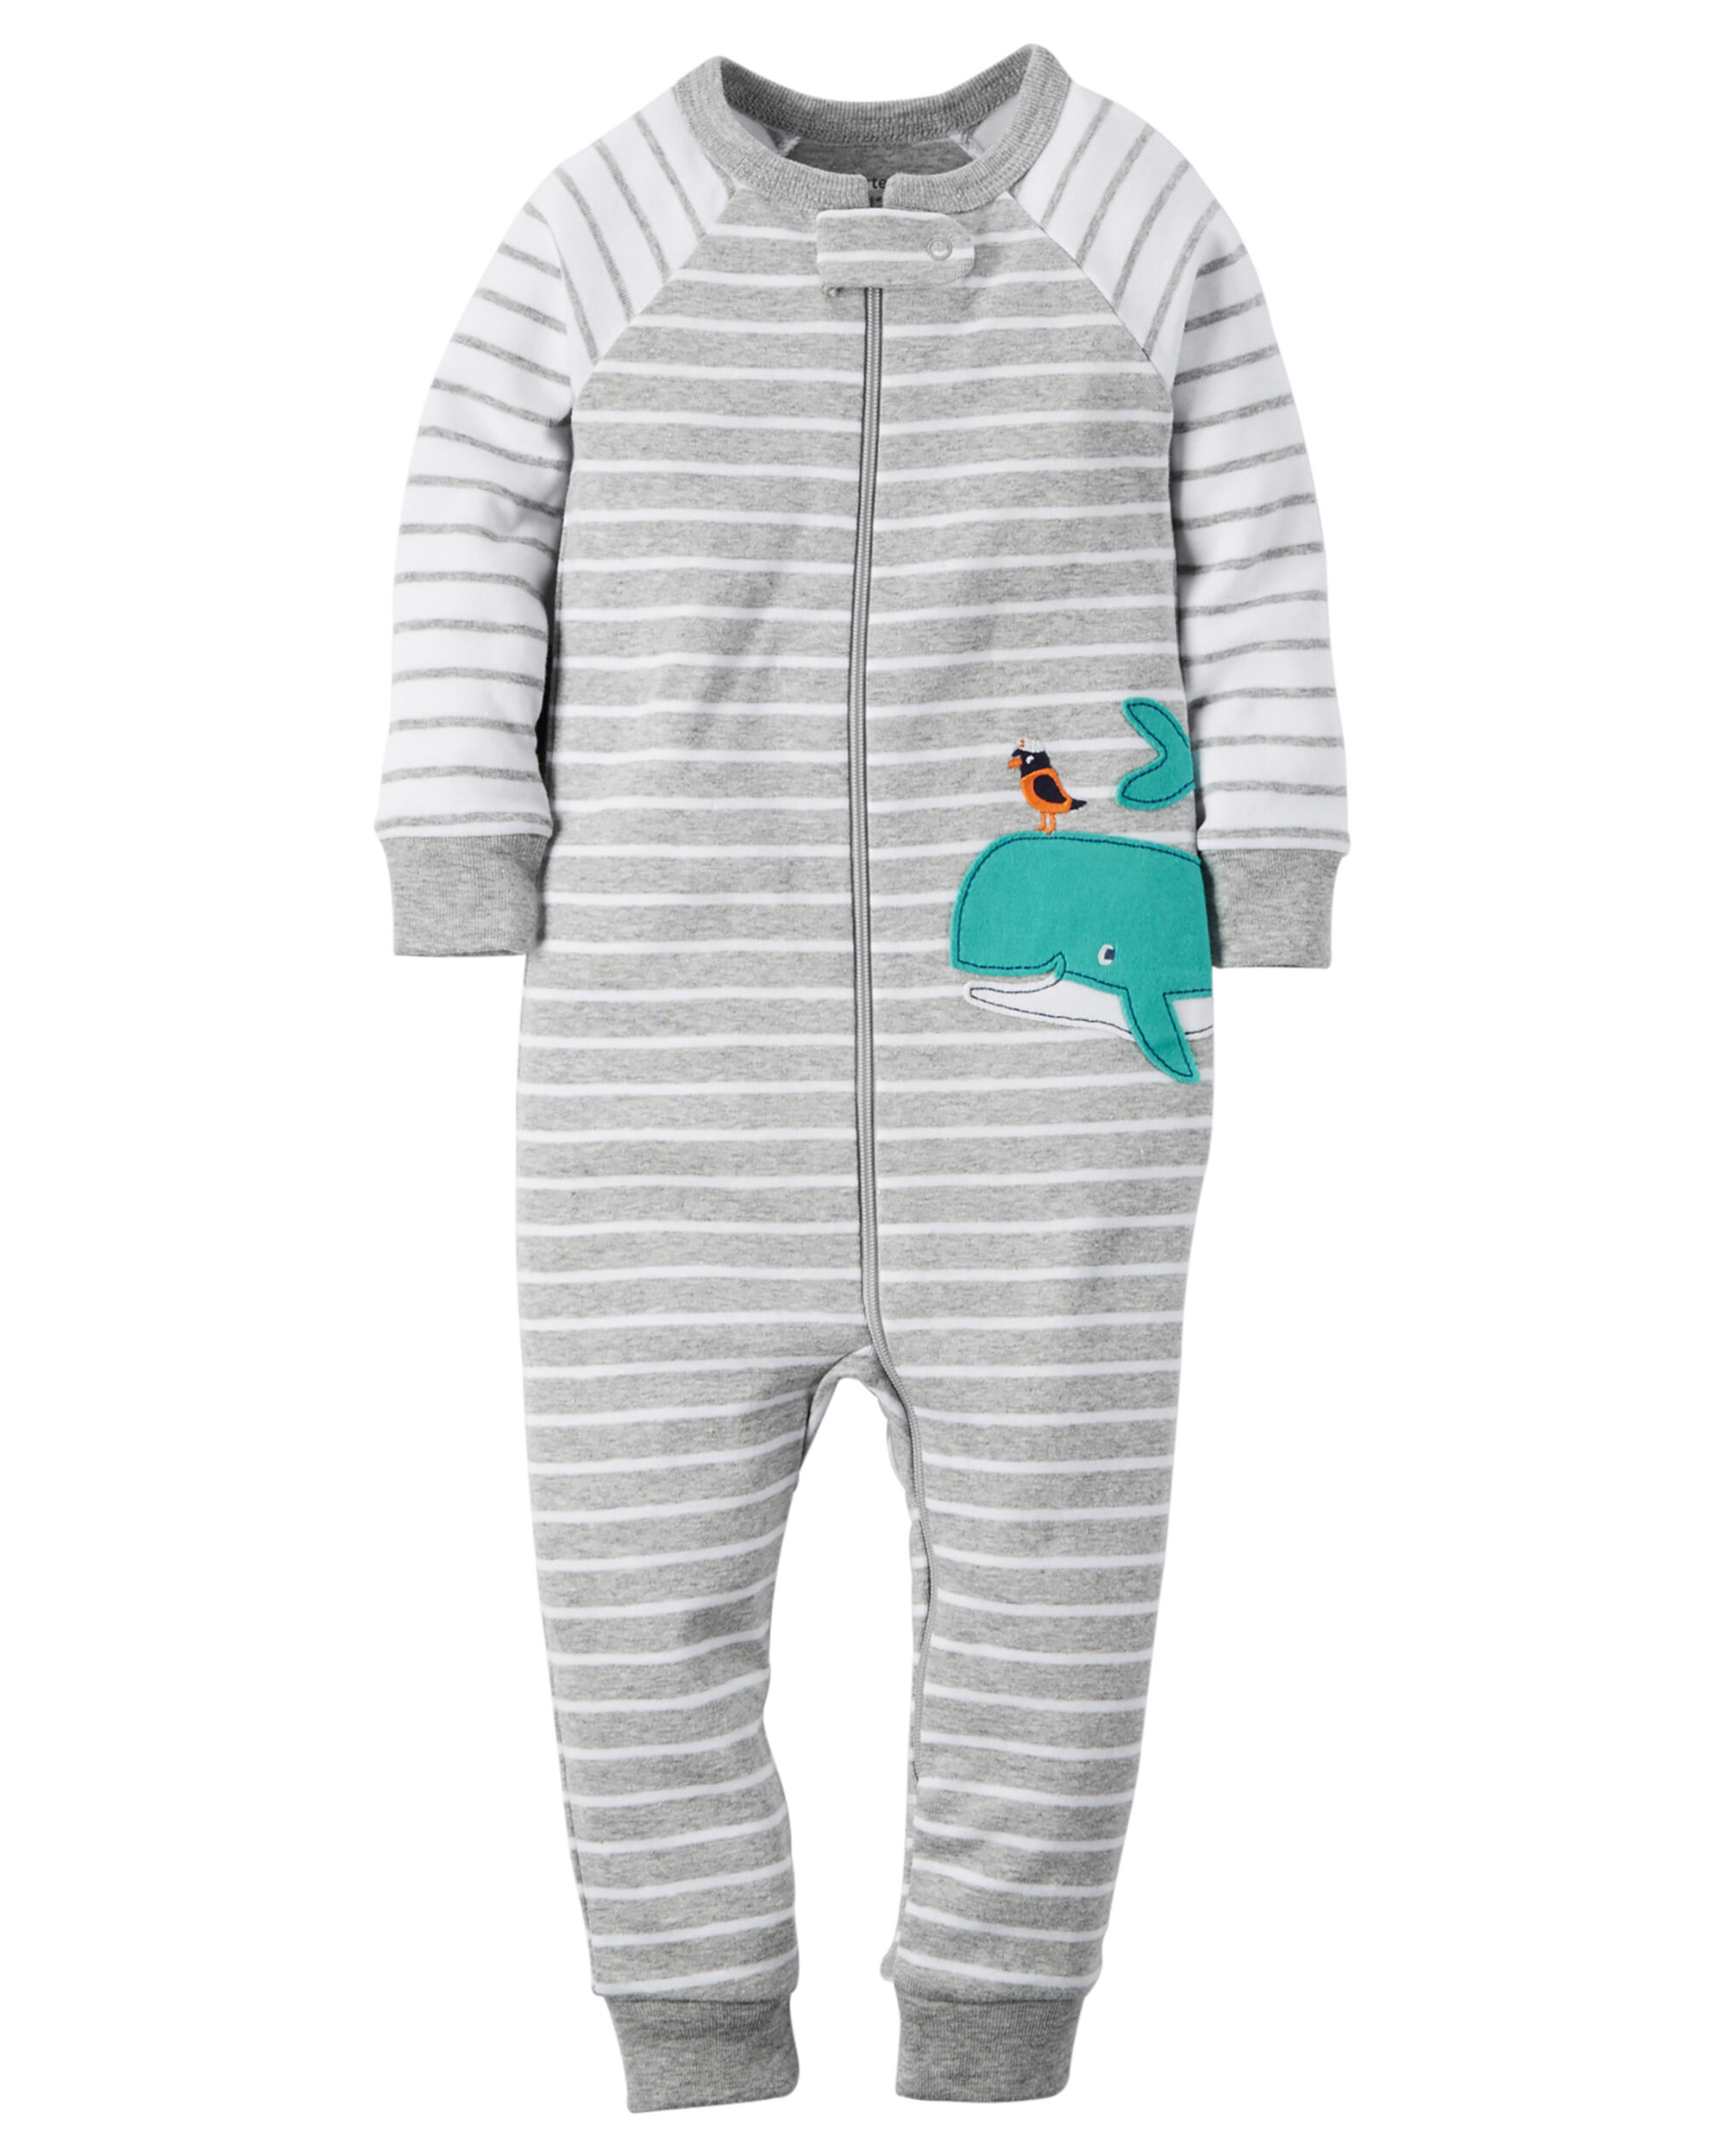 zoom up sleepers snap baby girl sleeper carters v piece pieces one en cotton footless ca loading